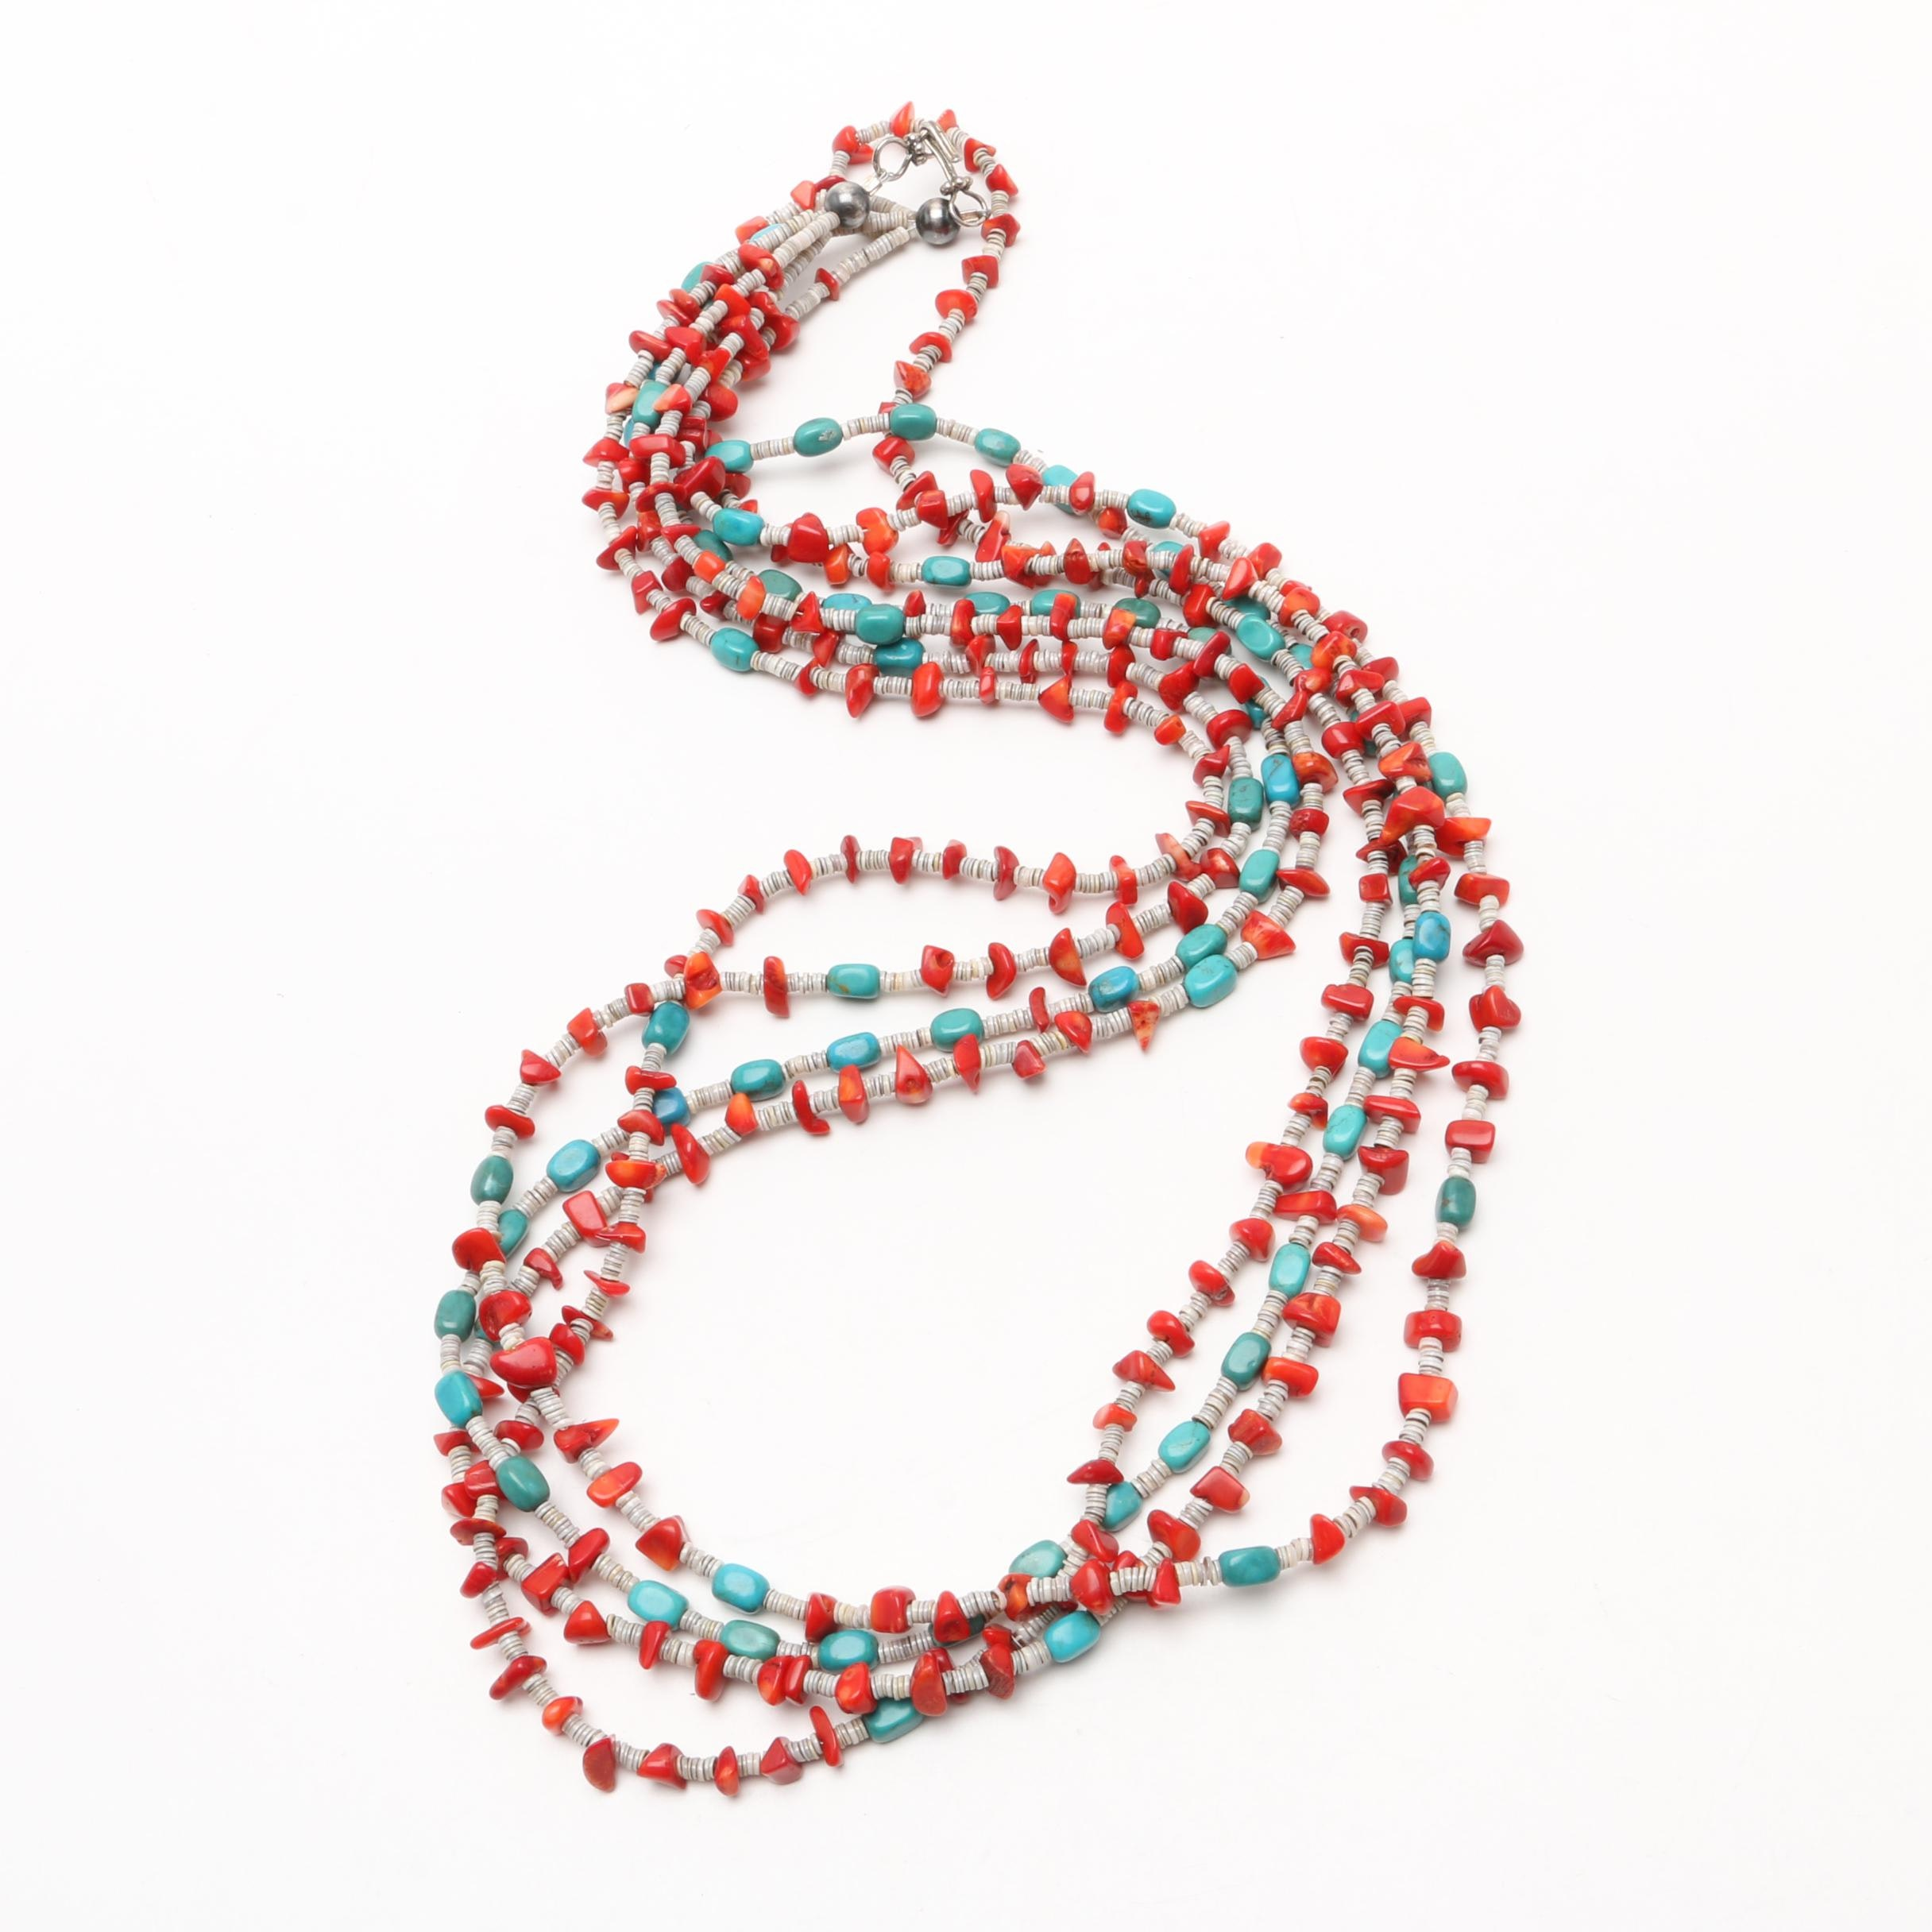 Three-Strand Turquoise, Coral, and Shell with Sterling Silver Necklace